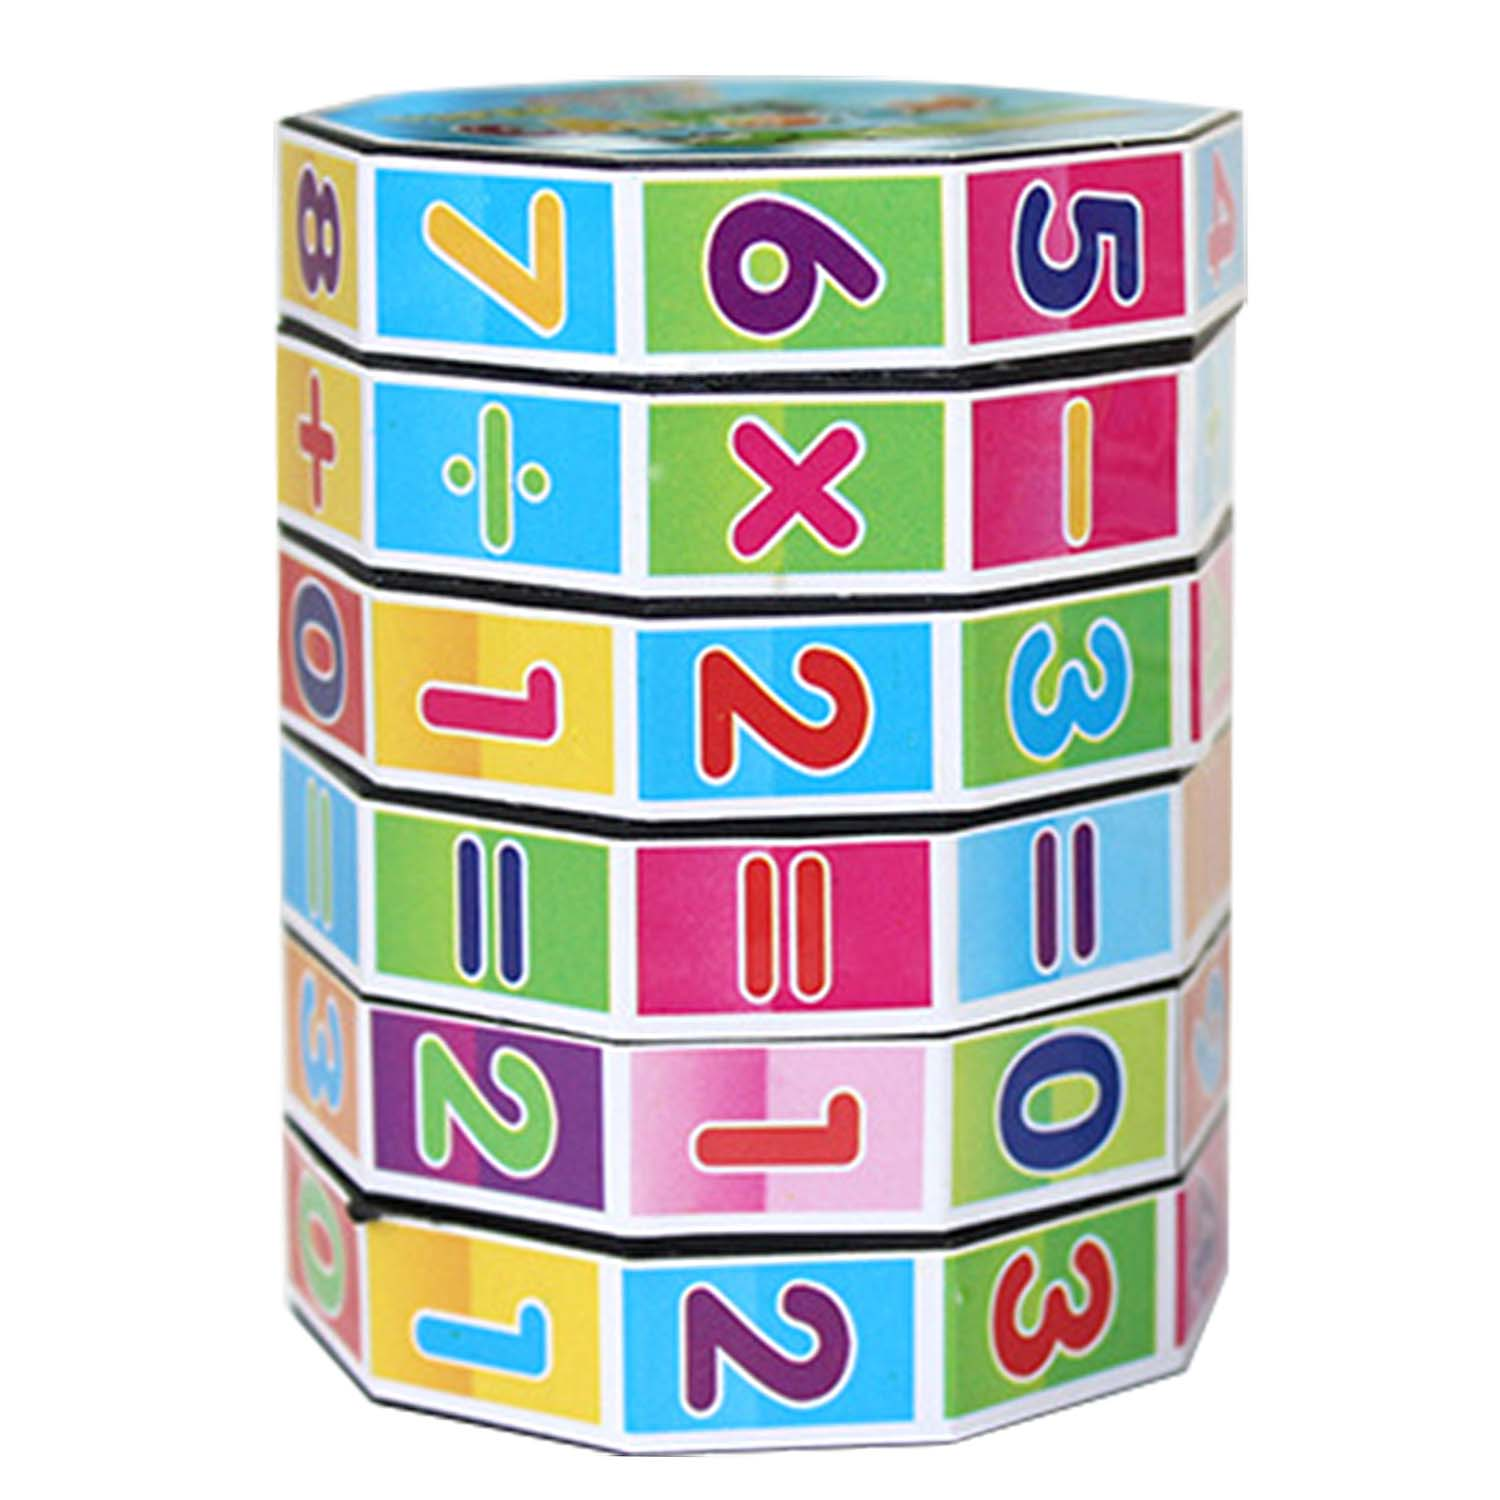 Colorful 6 Layers Intelligent Puzzle Cube Numbers and Signs Fun Education Learning Math Toy for Children Kids